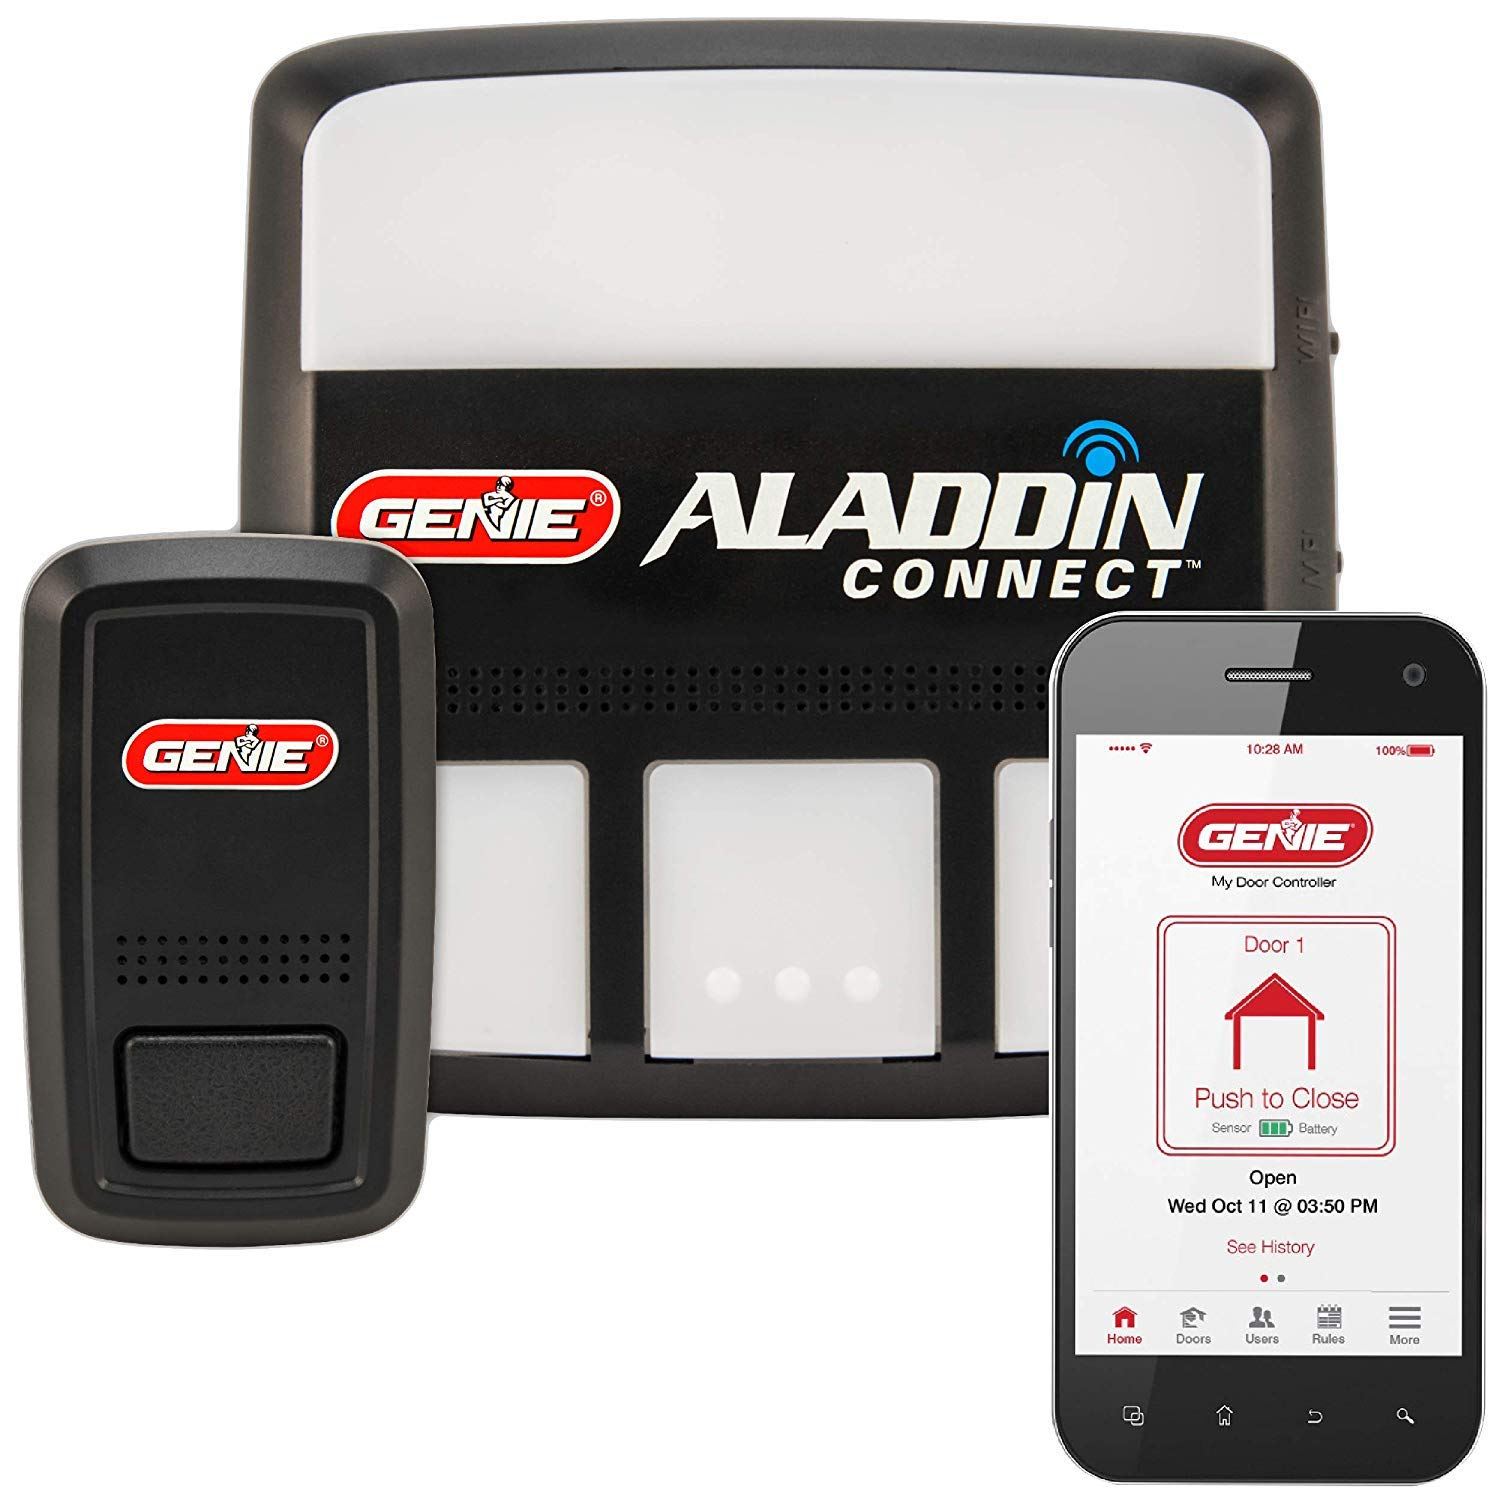 Genie ALKT1-R Aladdin Connect Smartphone Garage Door Opener - Monitor, Open & Close Your Garage Door from Anywhere (Item is Brand New Will Ship in Brown Box, not in Gift Box)